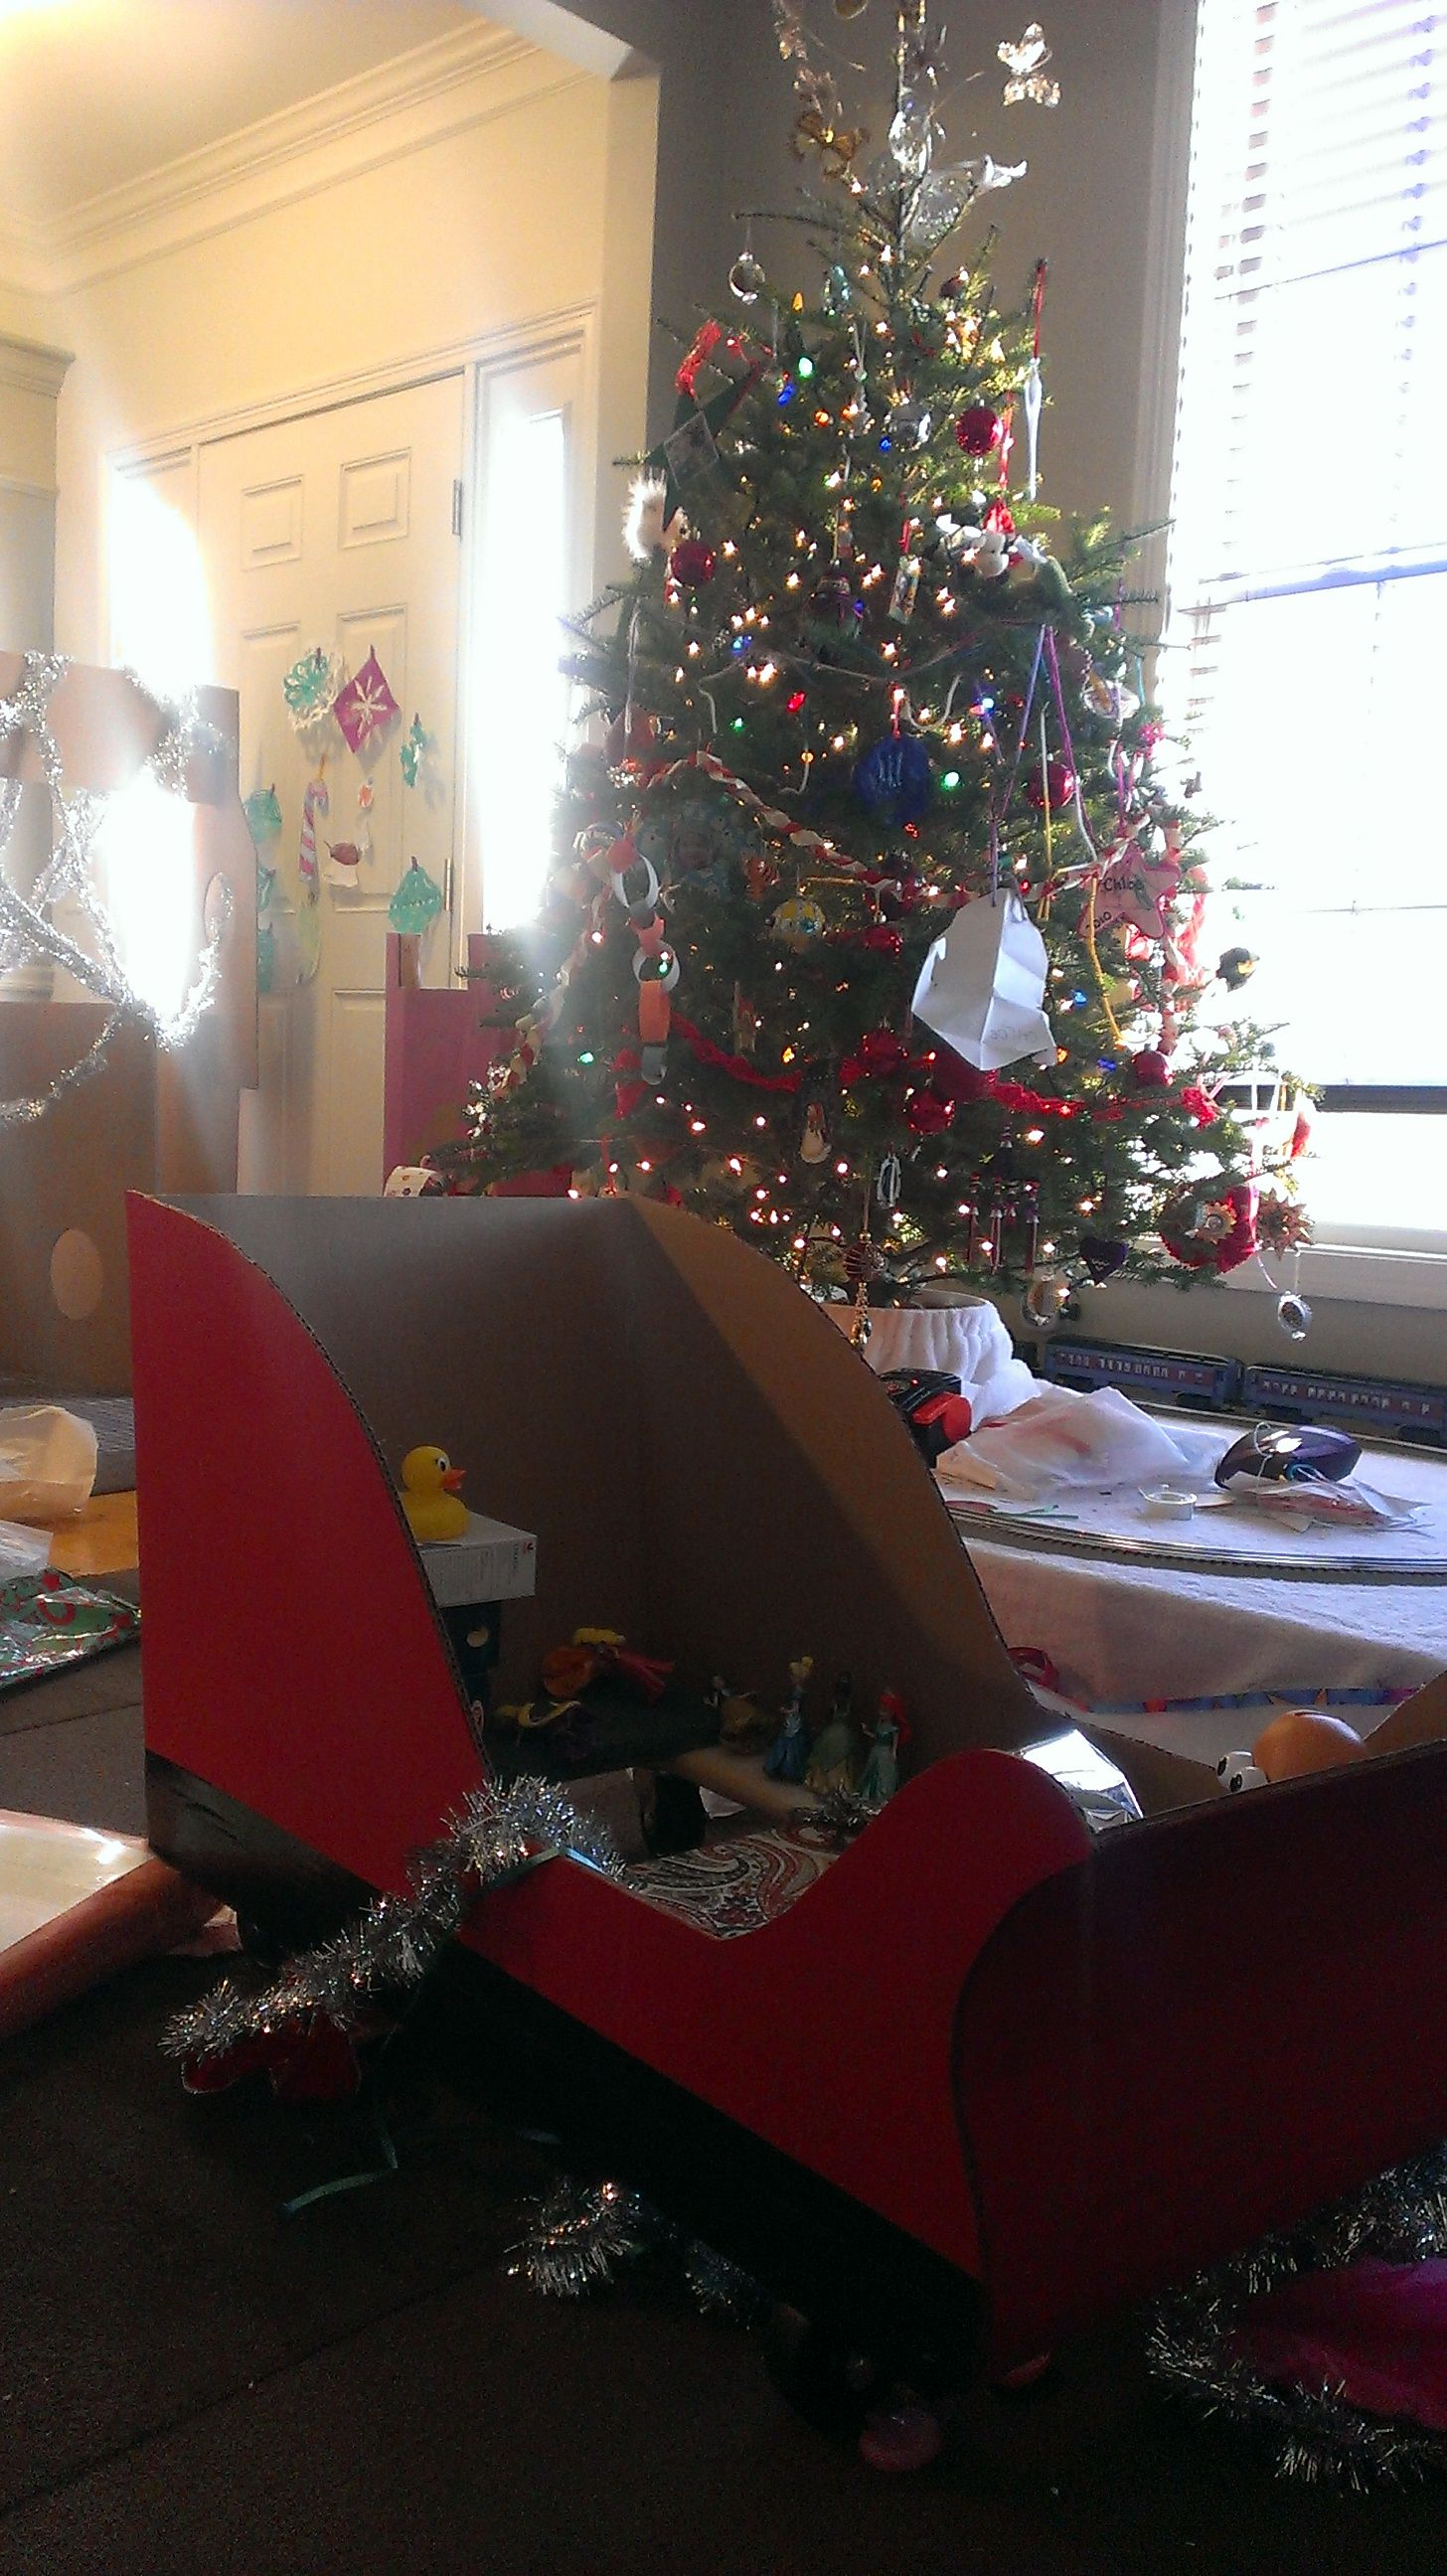 Santa s sleigh ride on toy made from cardboard and a furniture dolly